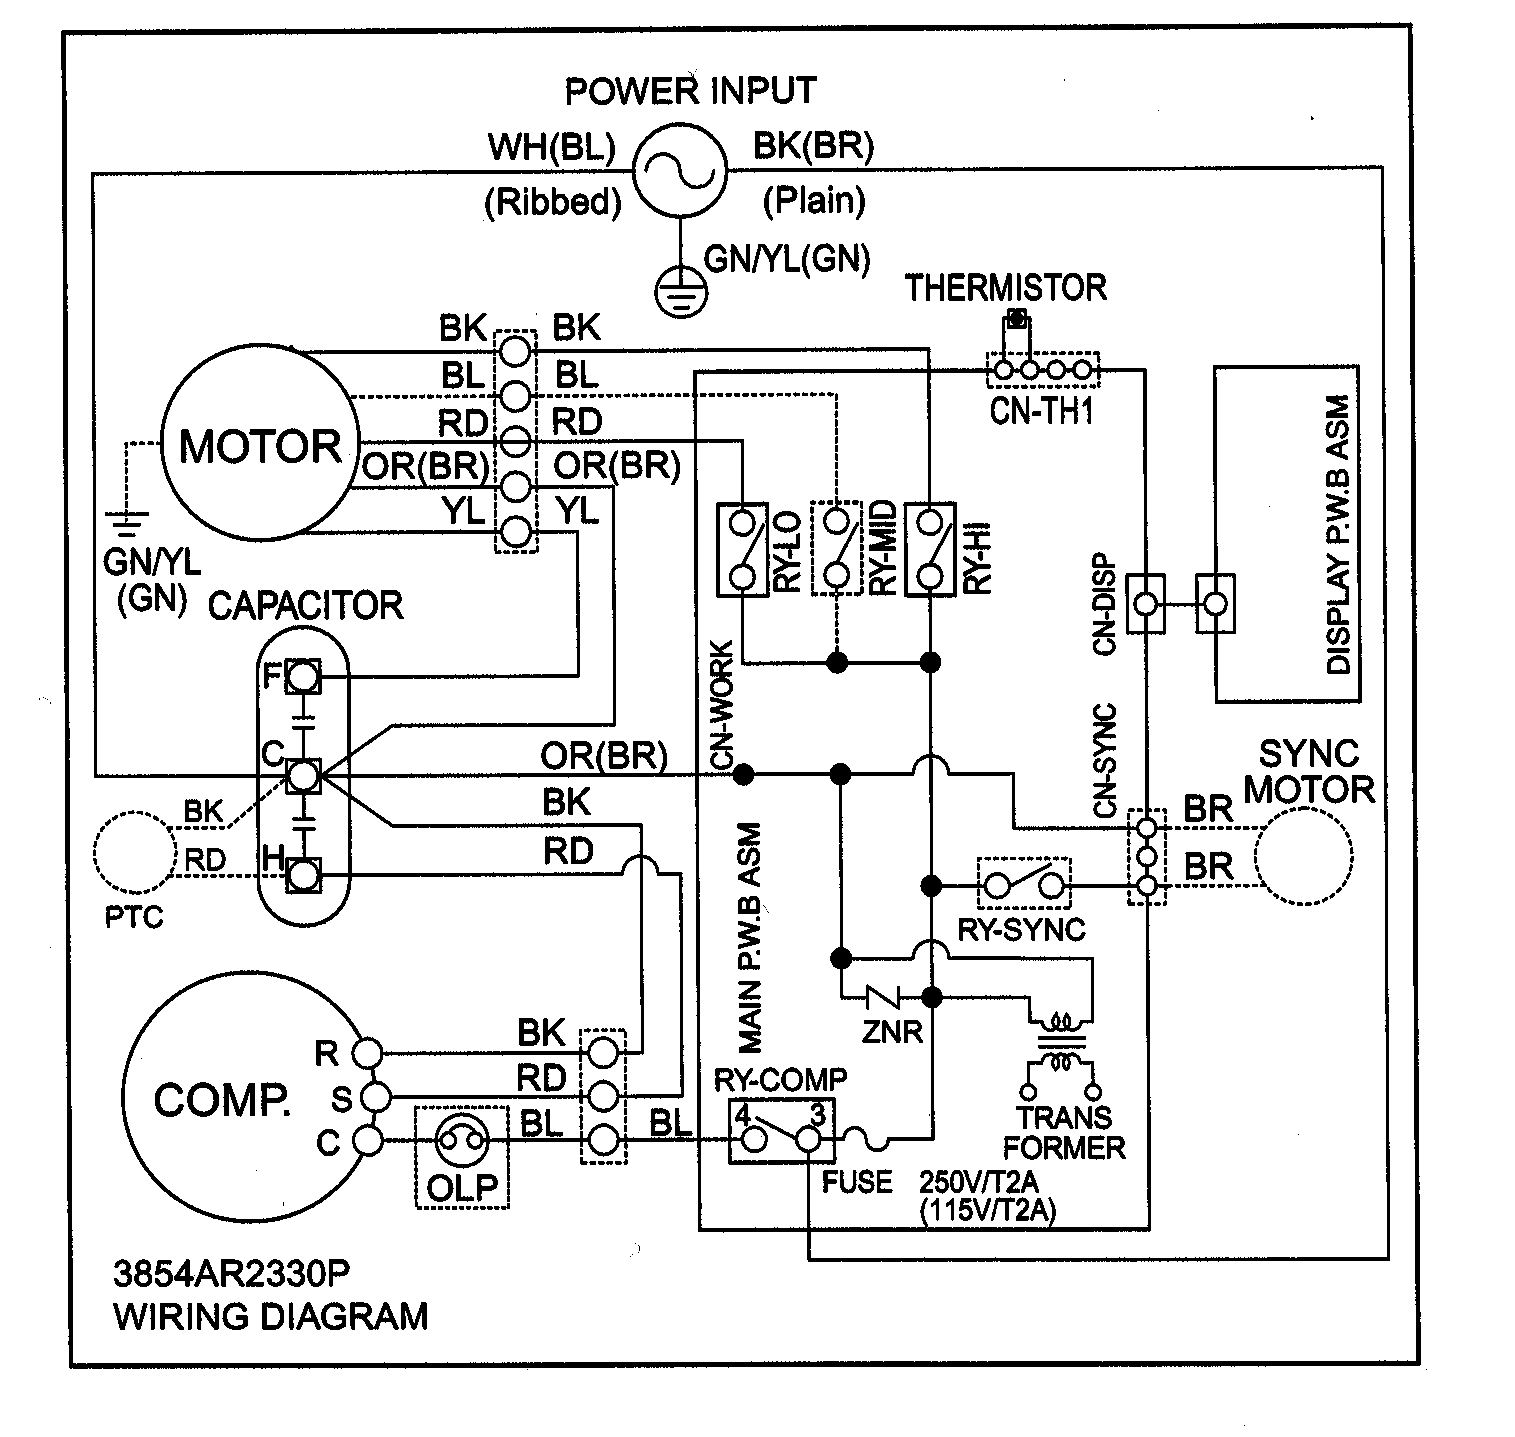 [DIAGRAM] Day And Night Air Conditioner Wiring Diagram